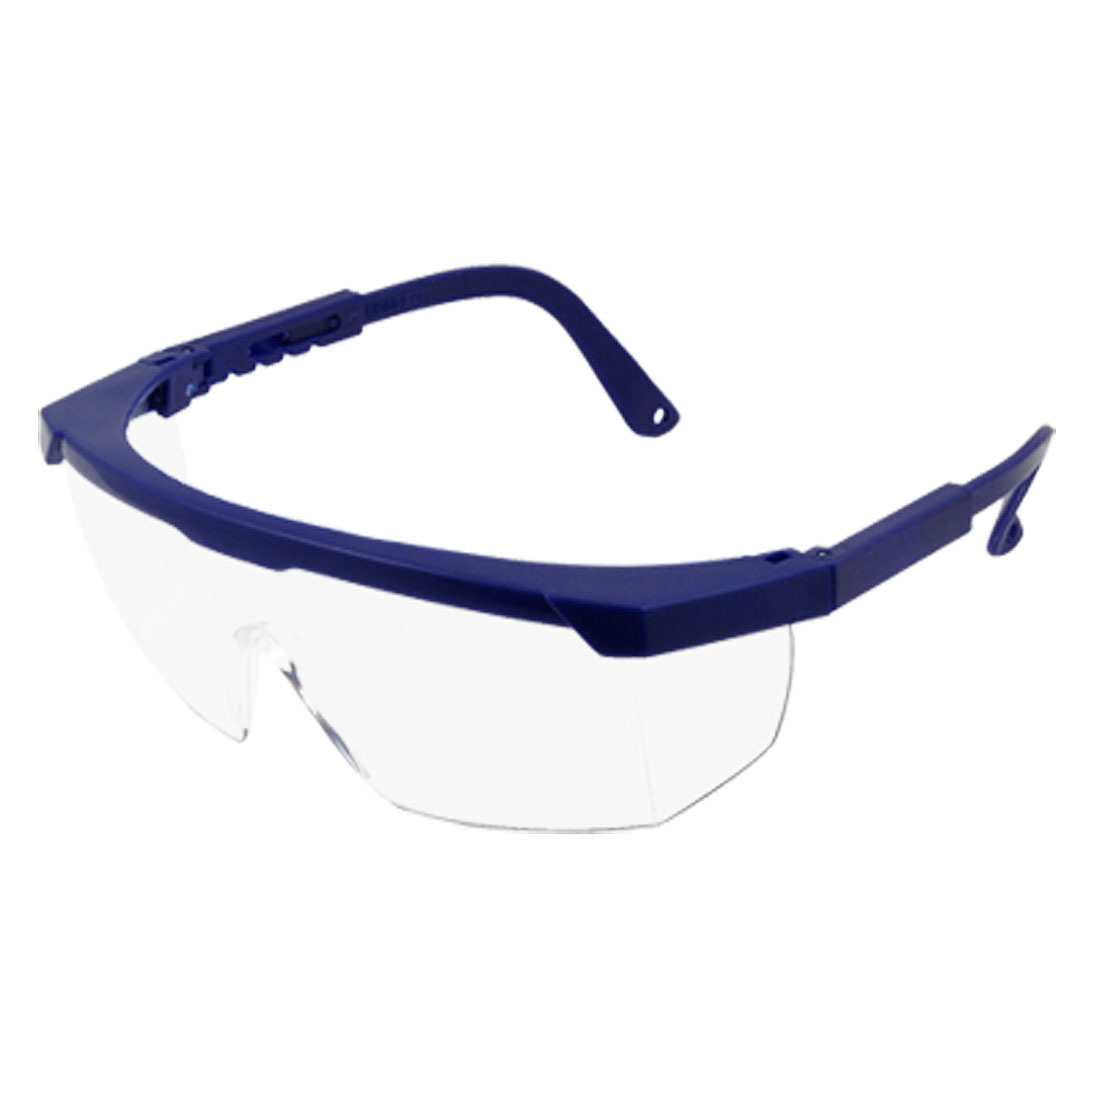 Unisex Royal Blue Frame Clear Uni Lens Retractable Arm Goggles Glasses